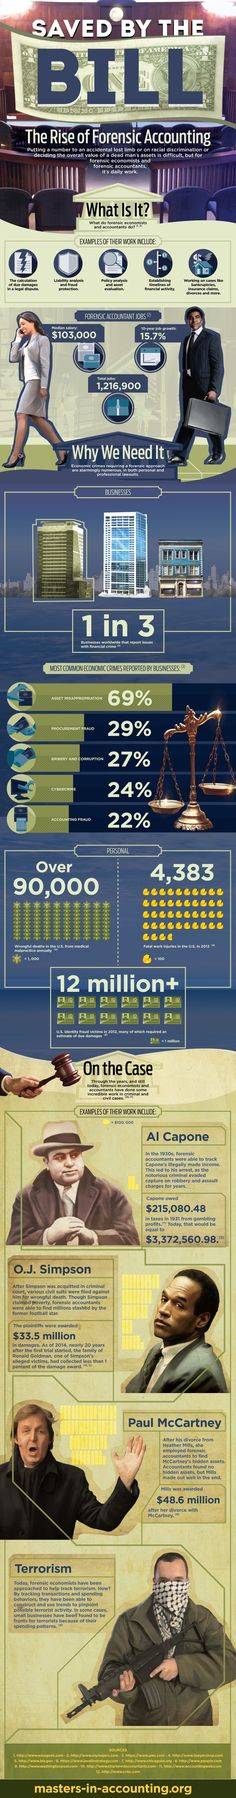 Saved by the Bill: The Rise of Forensic Accounting Infographic. #forensicaccounting